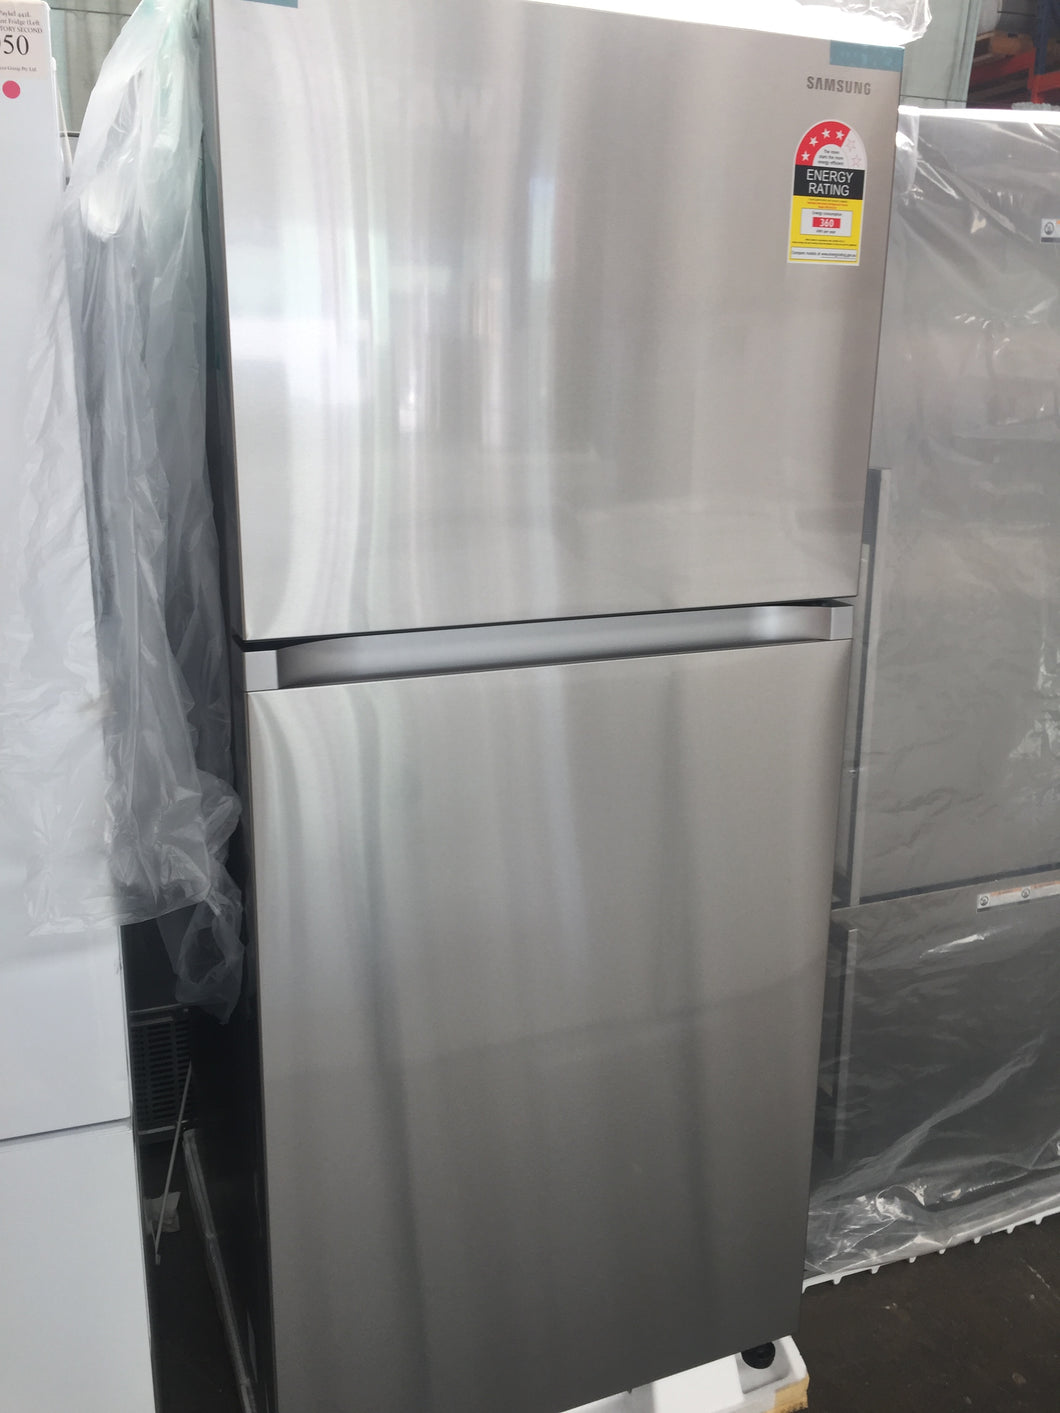 Samsung 525L Top Mount Refrigerator - New Damaged packaging